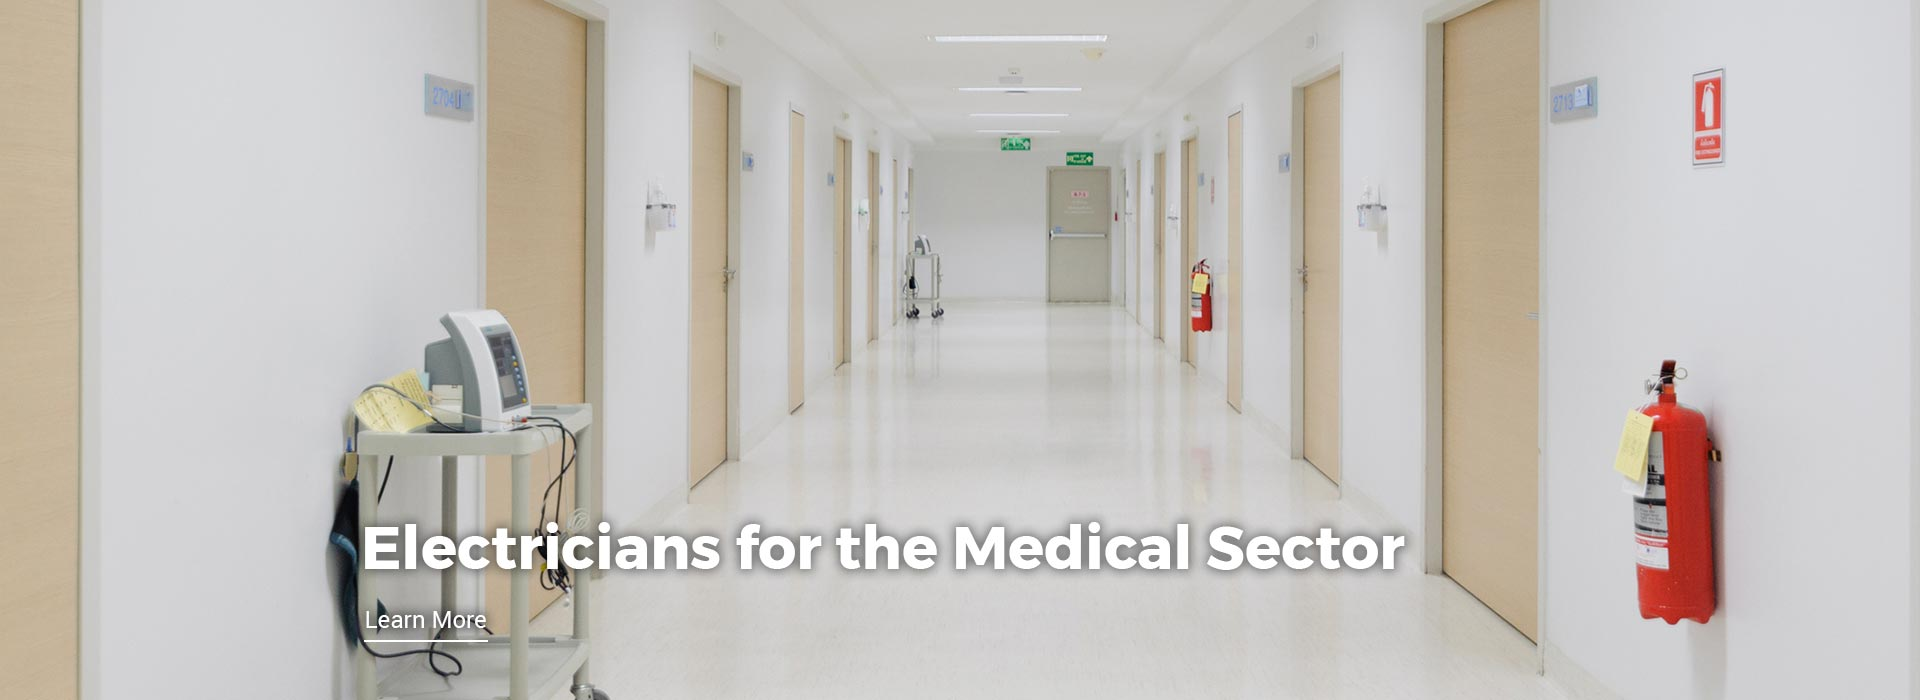 Electricians specialising in the medical sector. Learn More